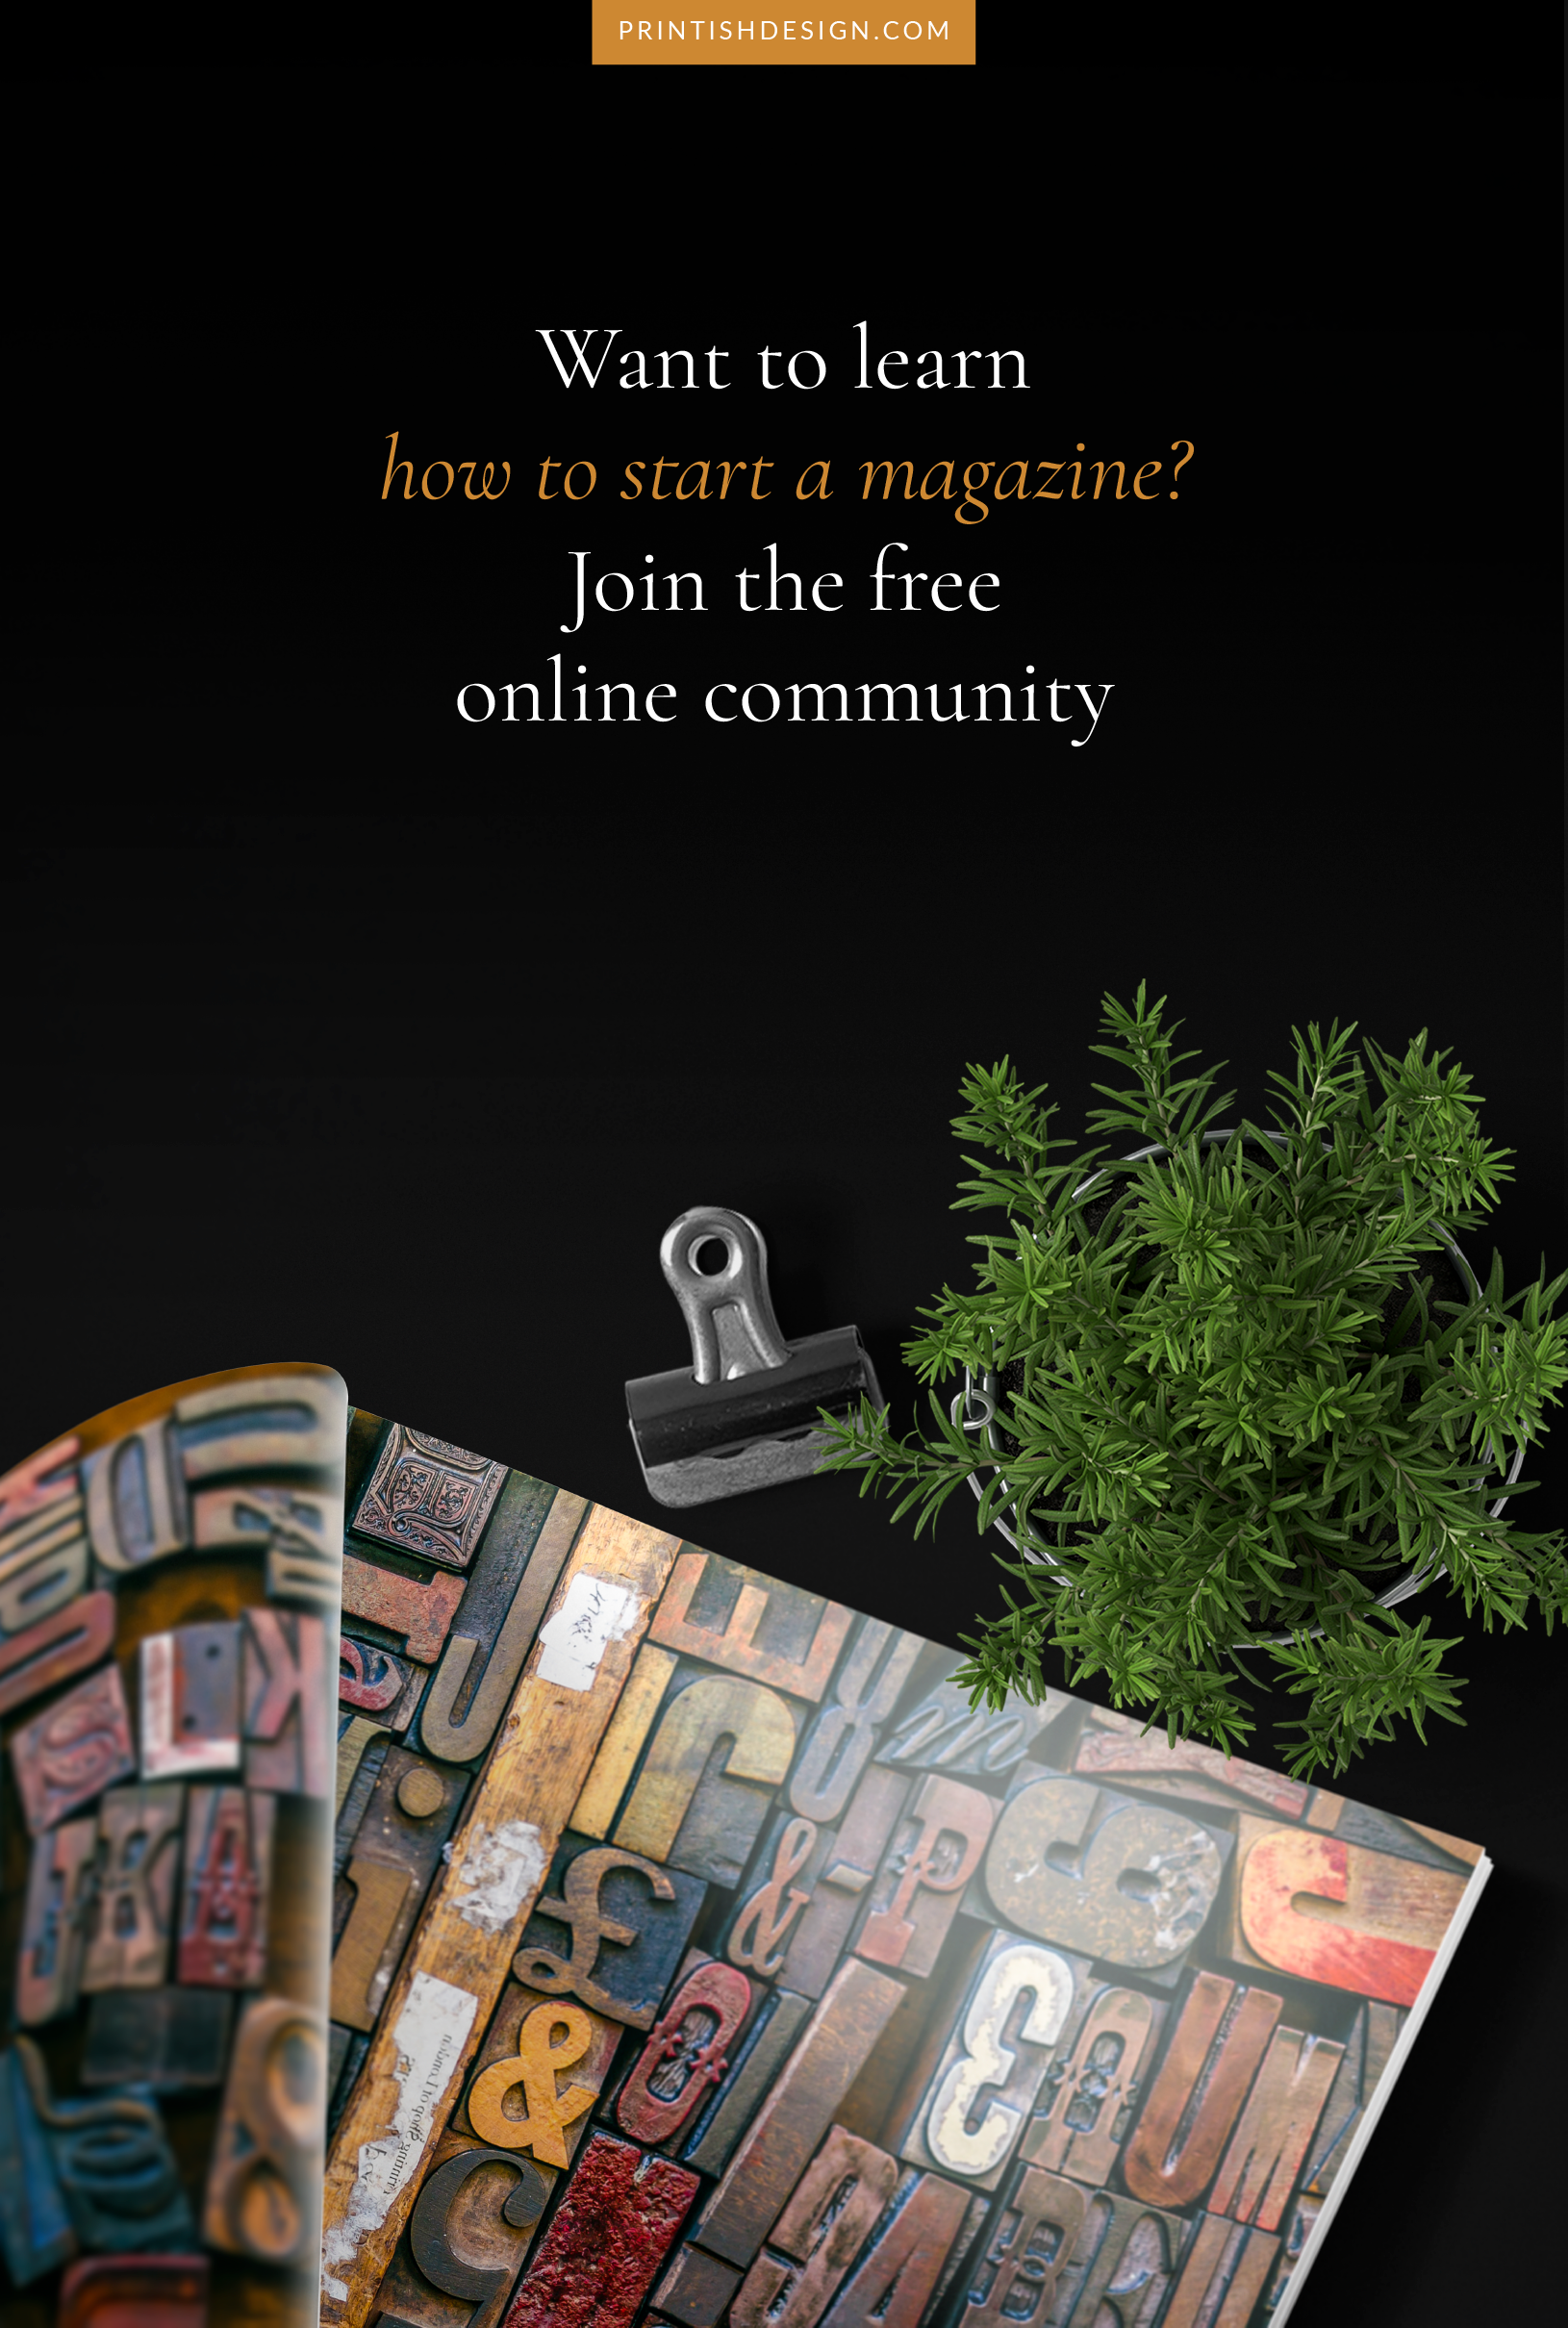 Want to Start a Magazine? Join the Free Online Community